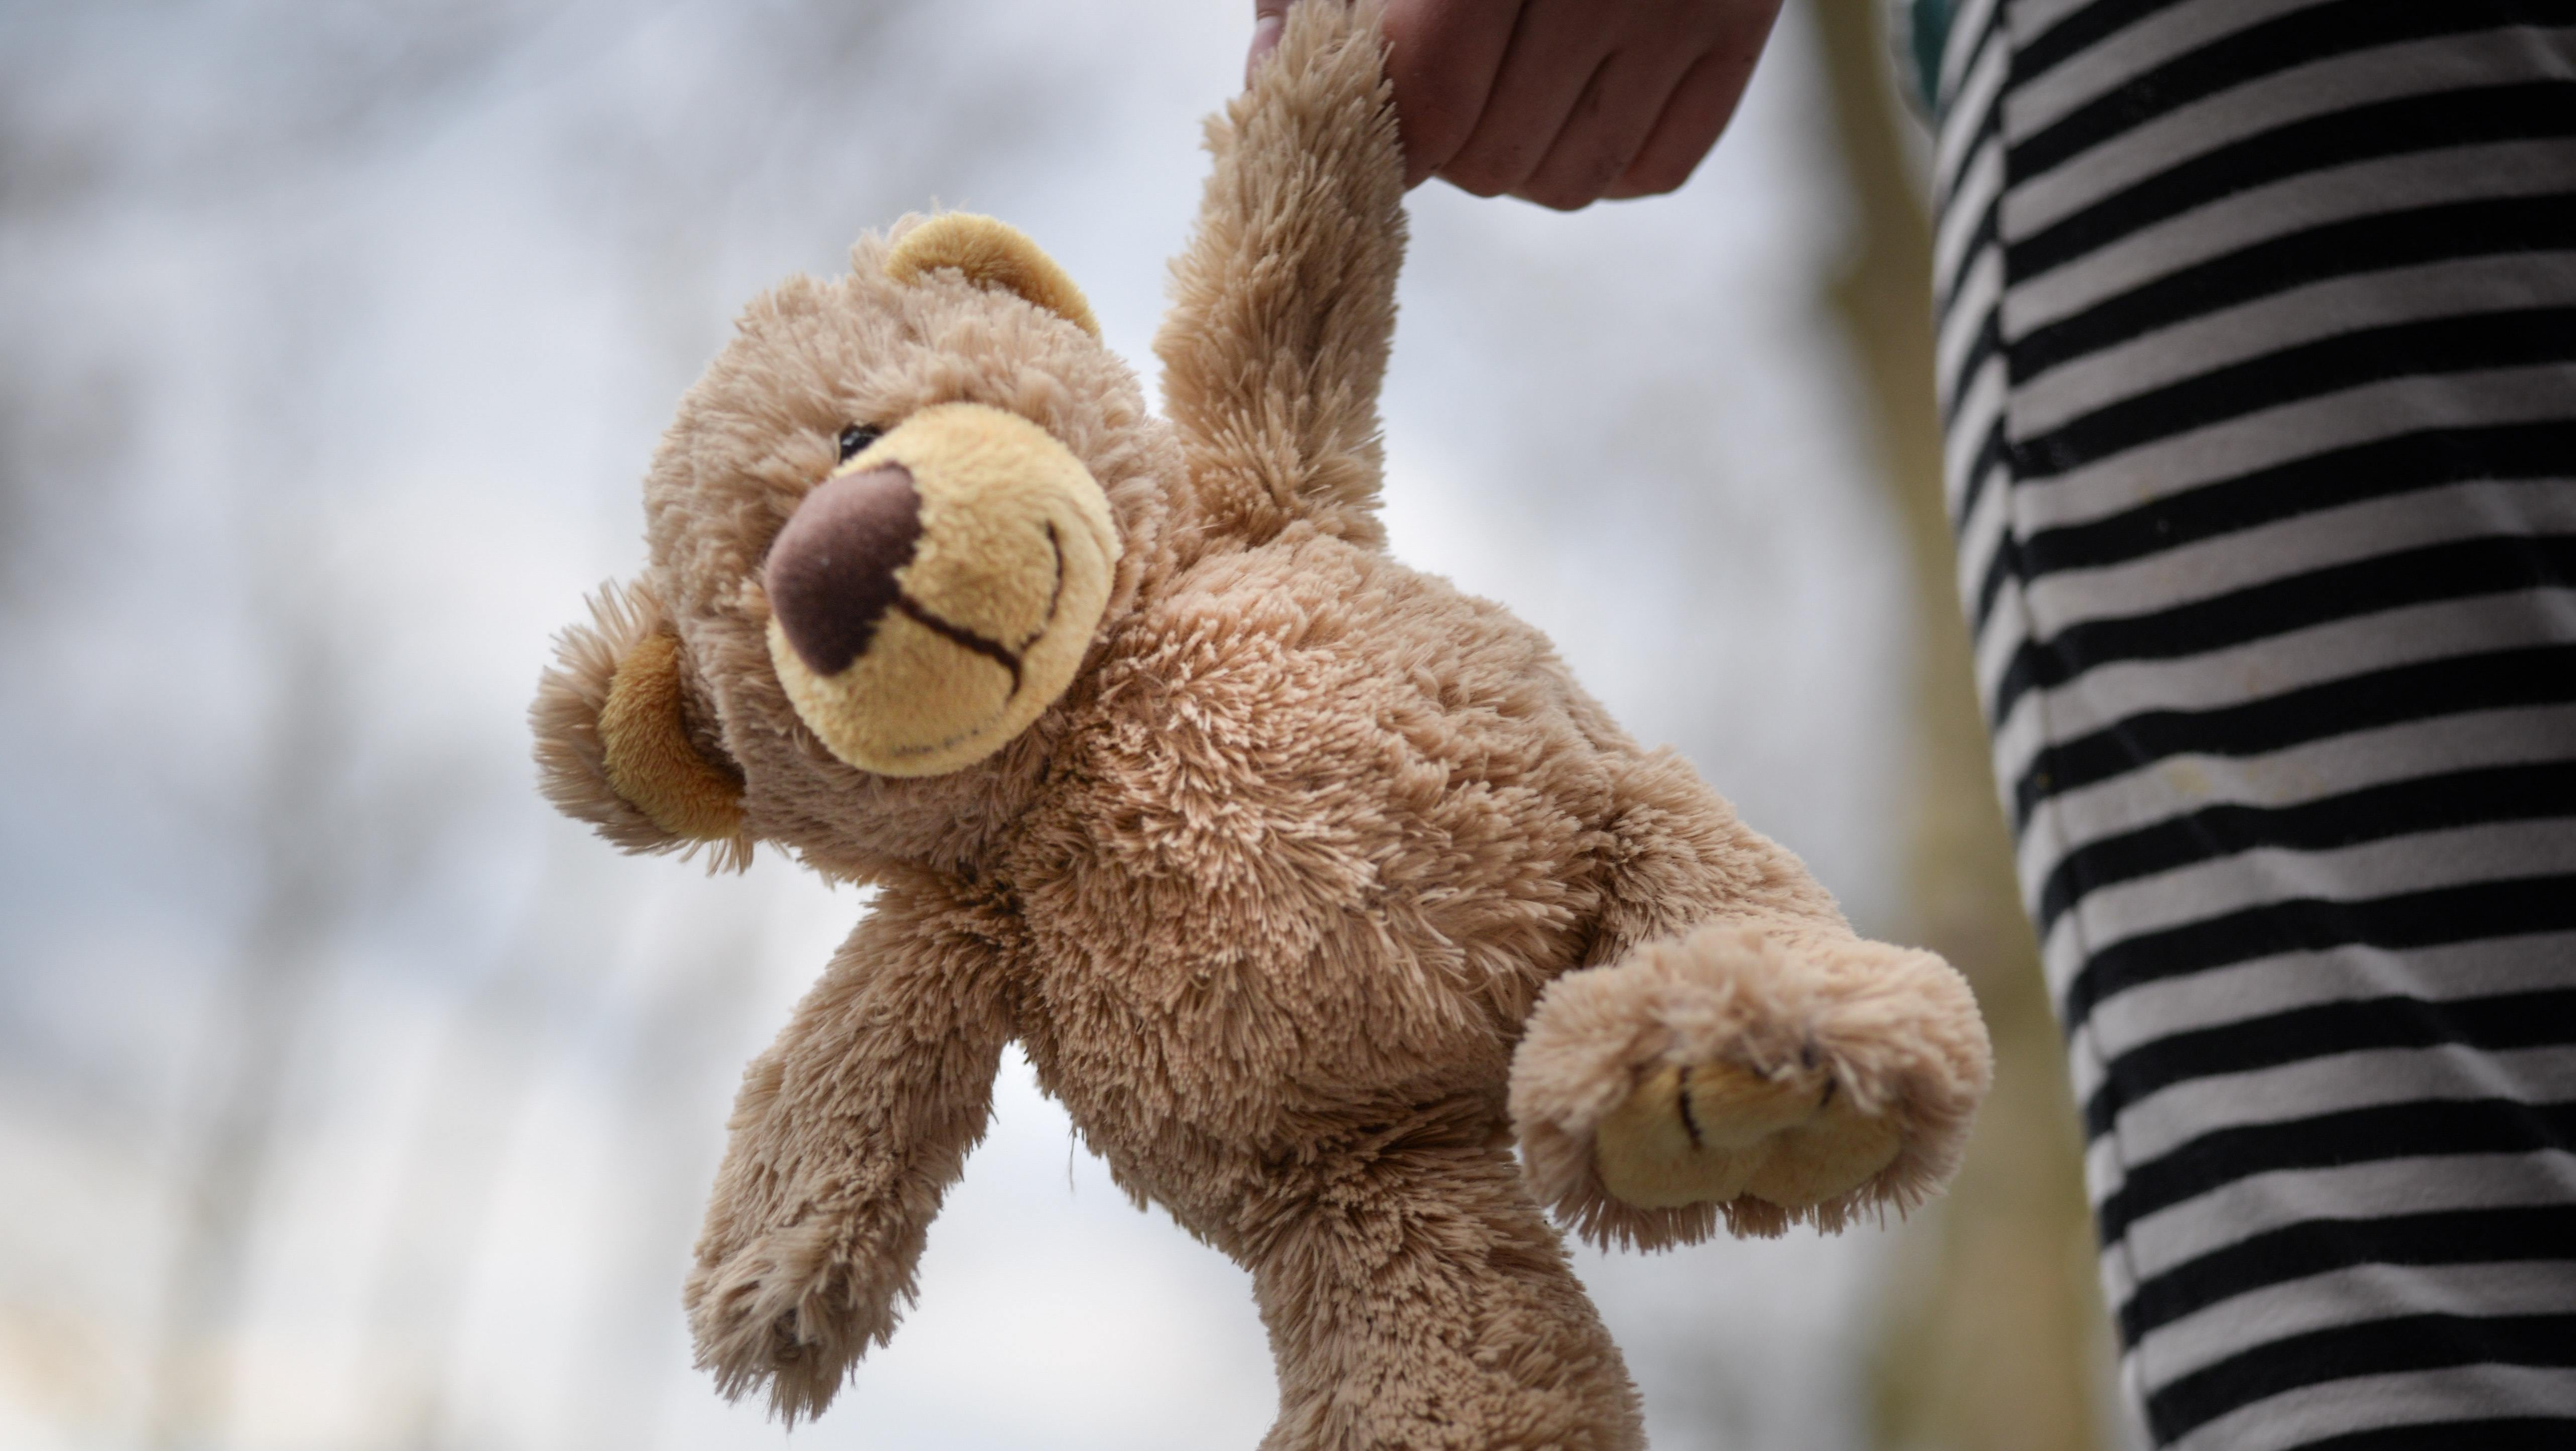 How A Stuffed Animal Can Help Kids Grieve